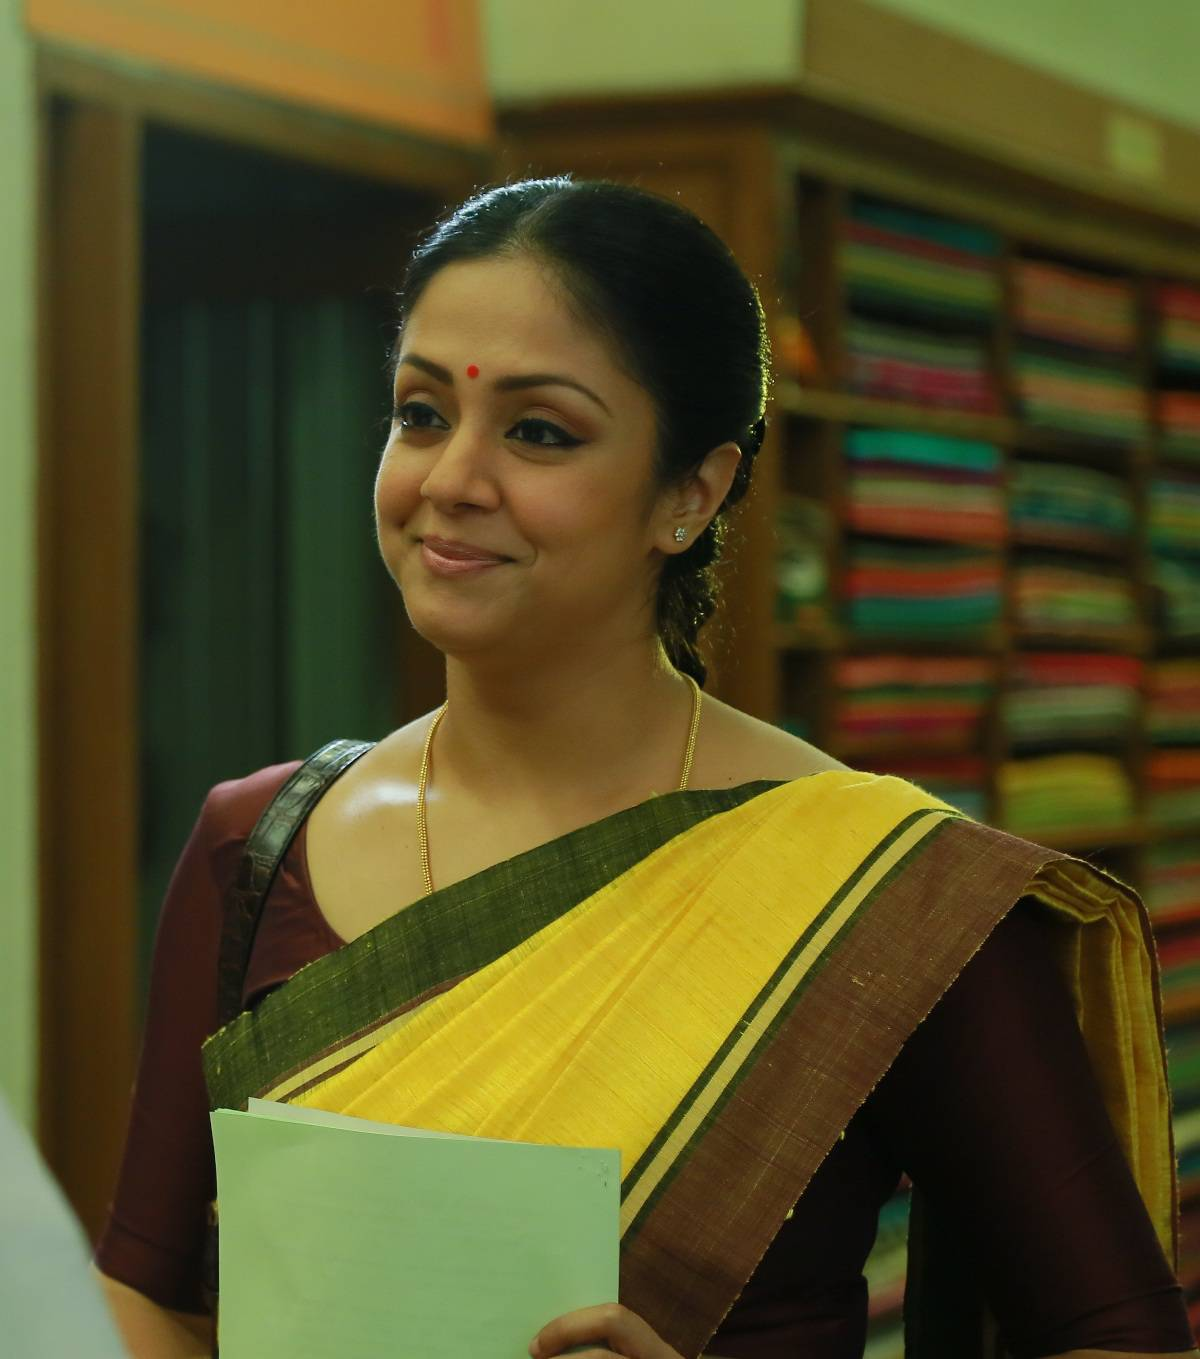 Kollywood Actress Jyothika Photos In Yellow Saree